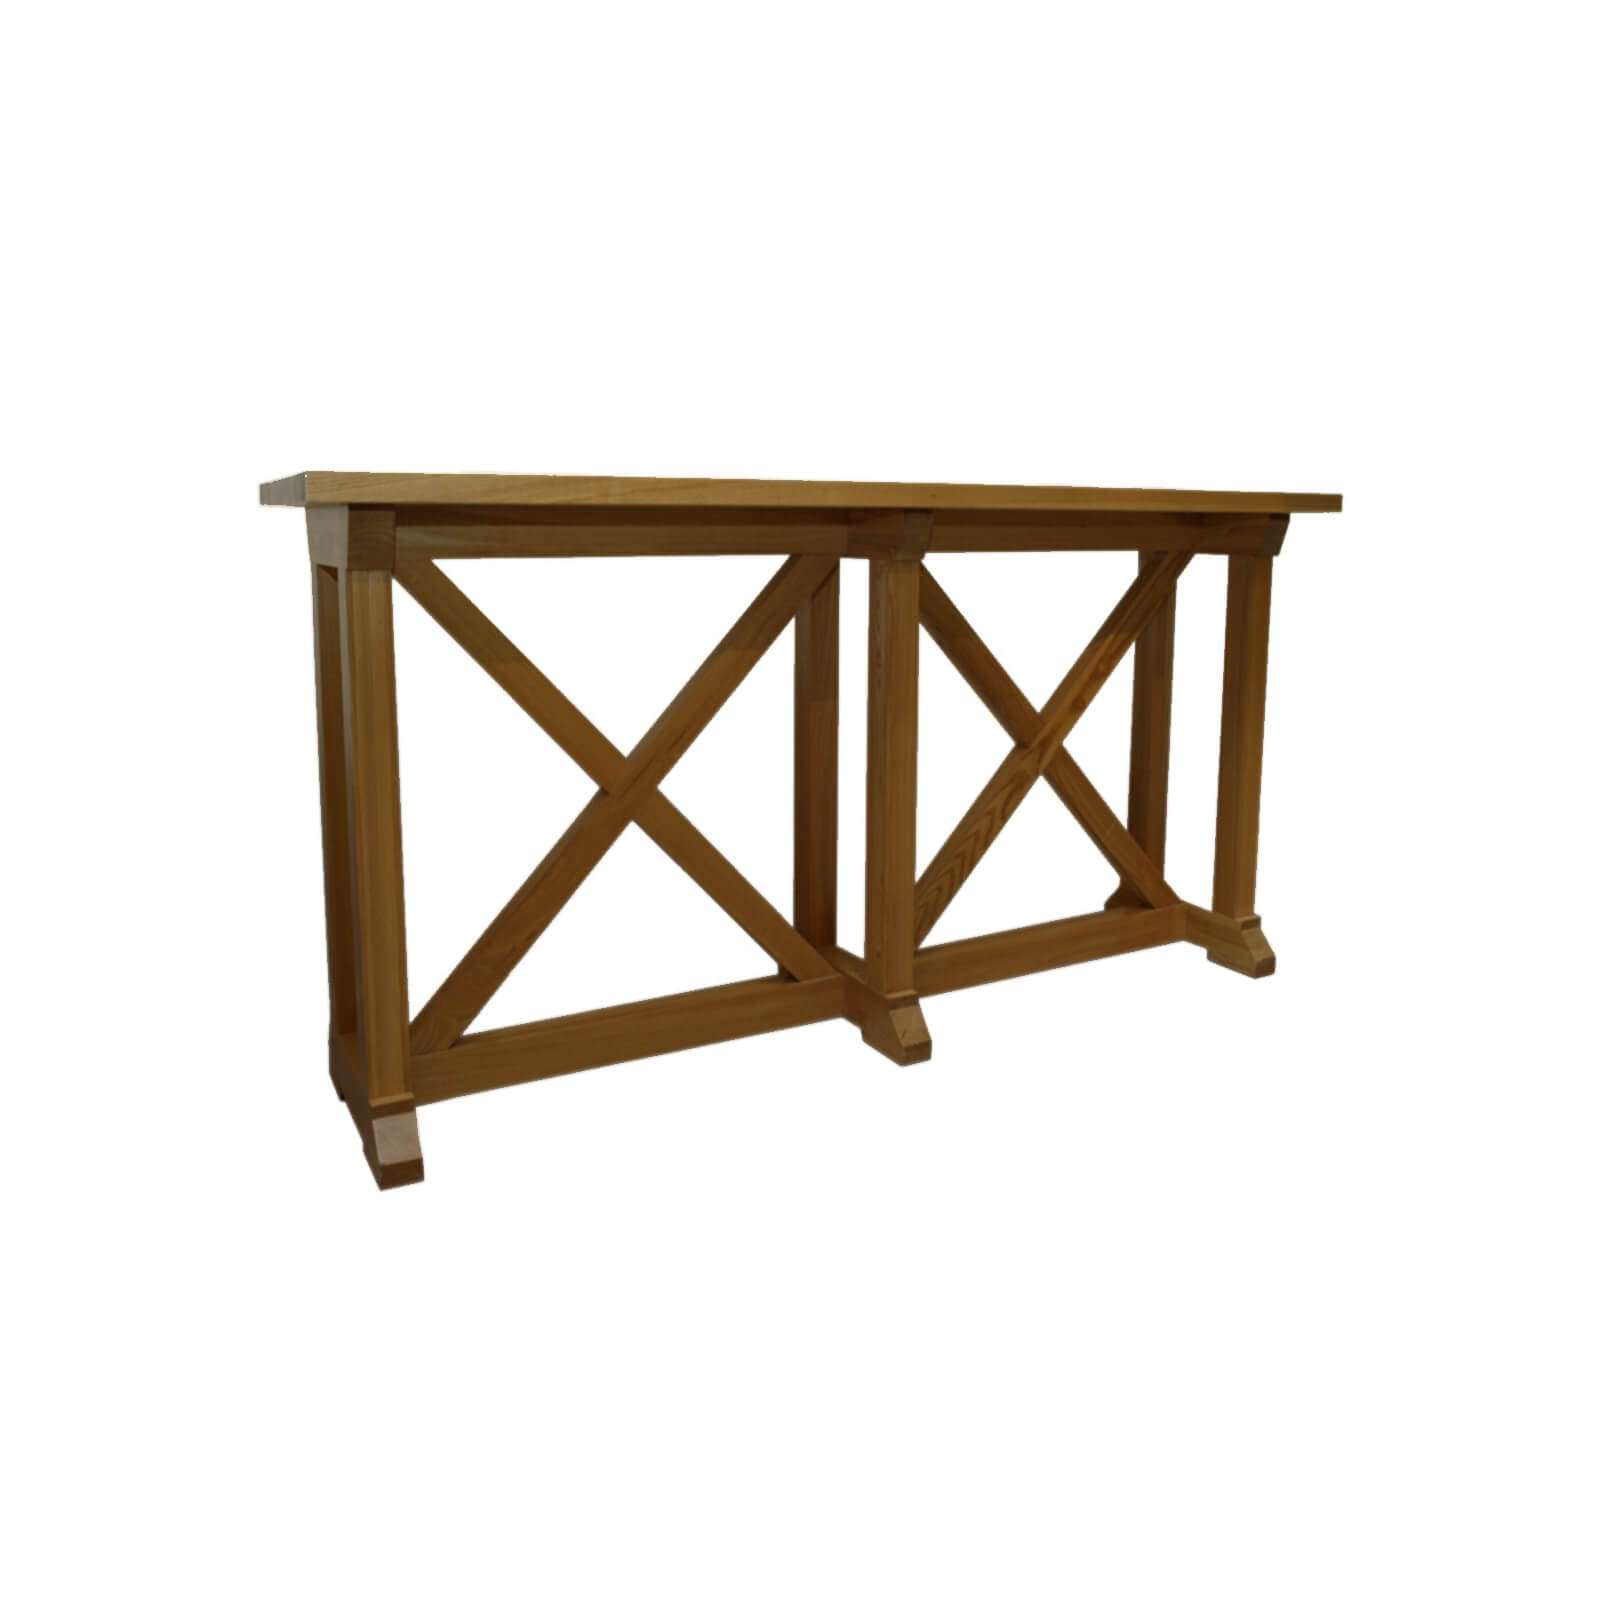 console table, walnut console table, hamptons console, x brace console